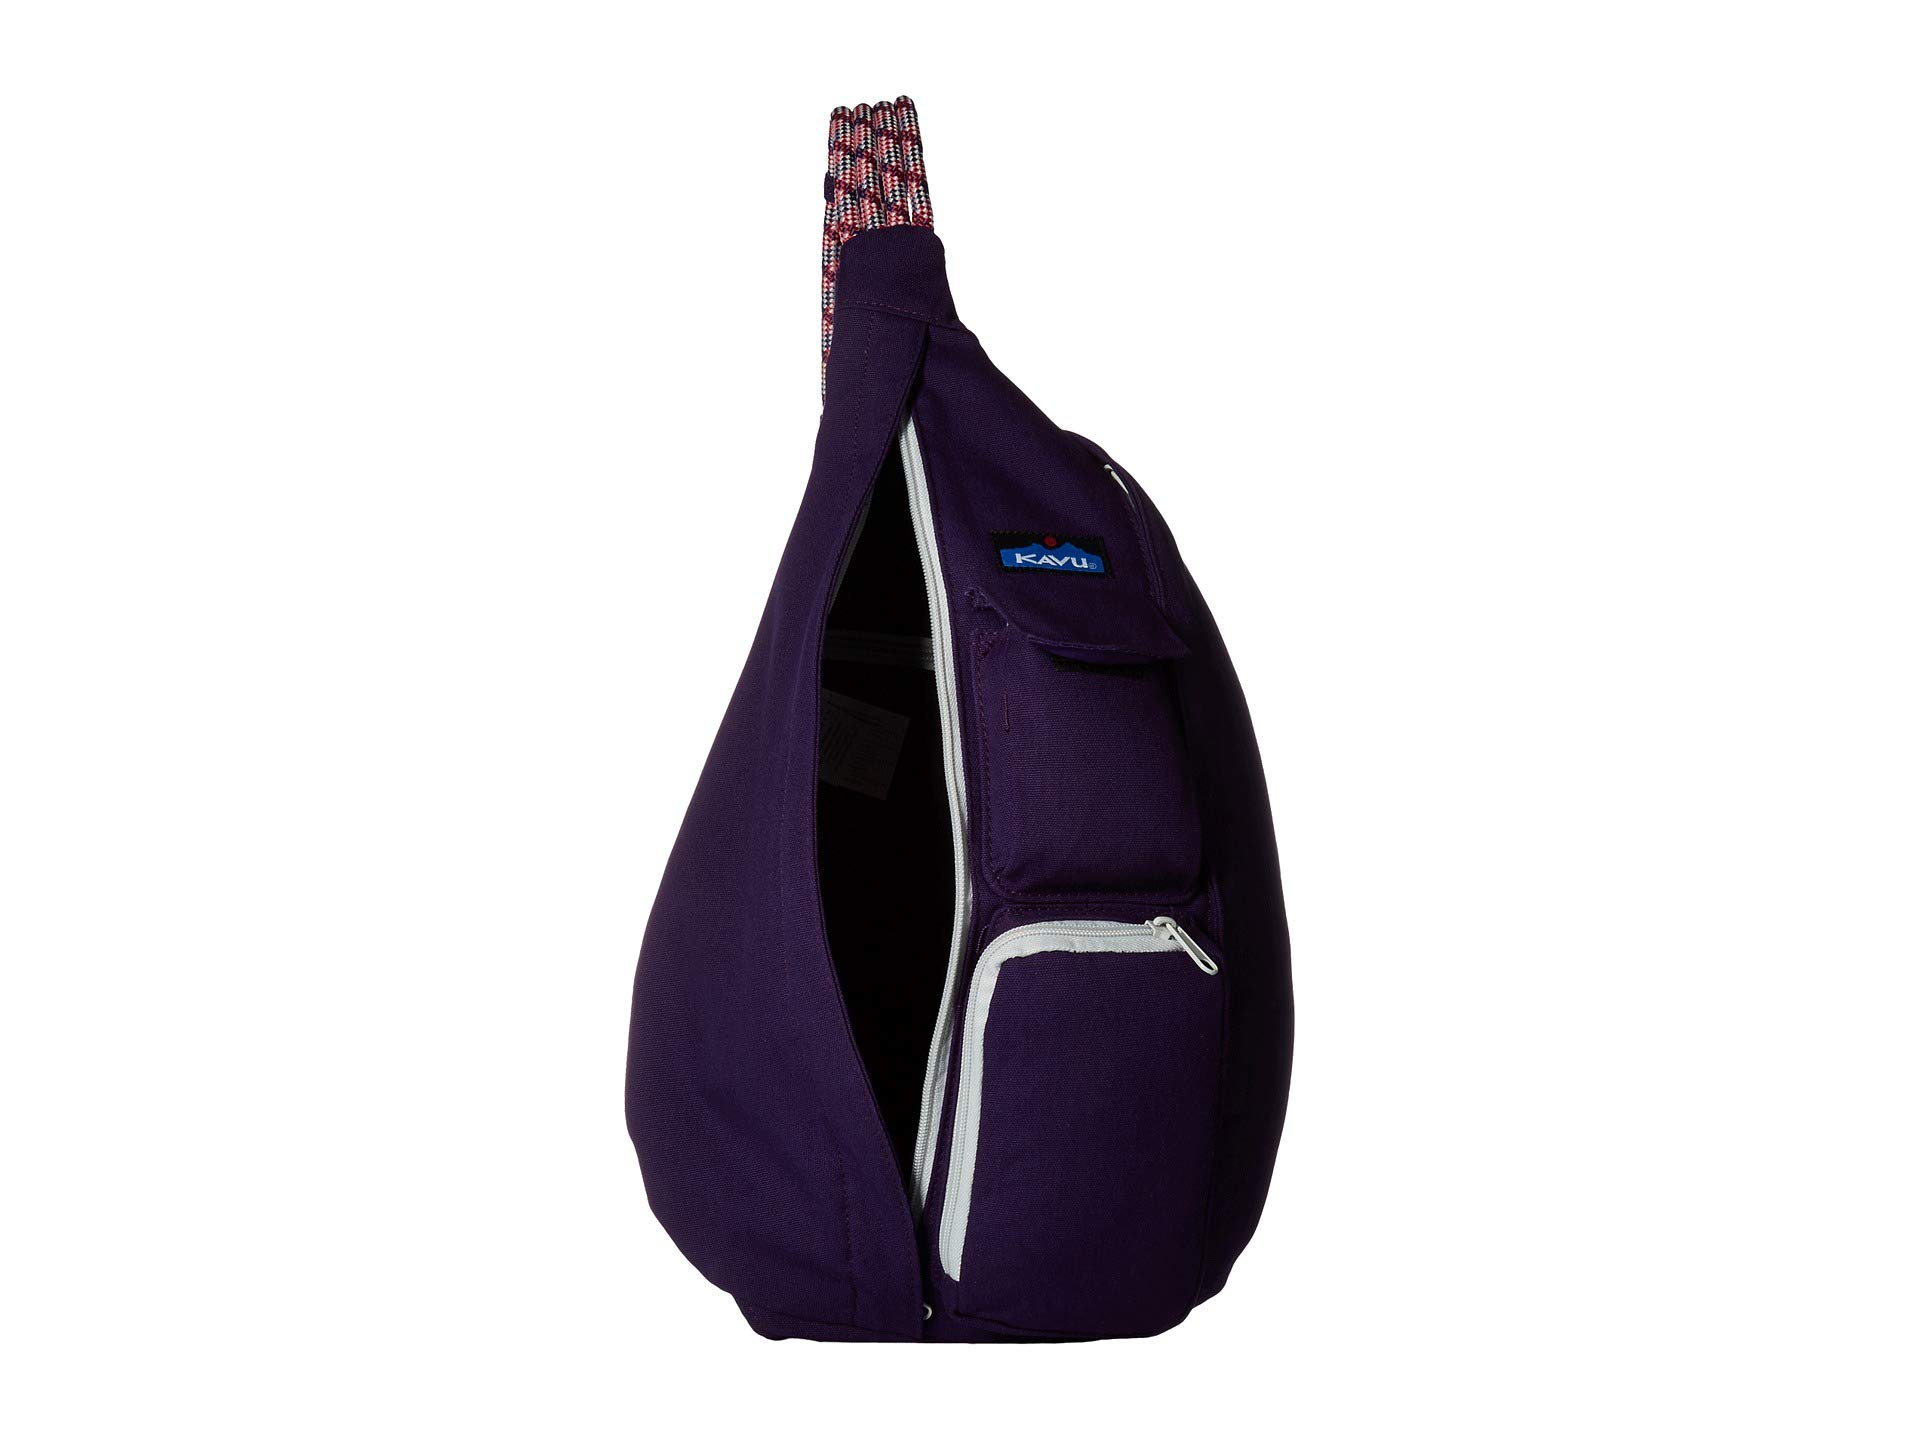 Bag Kavu Rope Mysterious Bag Mysterious Rope Kavu Mysterious Kavu Kavu Bag Rope Rope Bag x1gCqvxw8